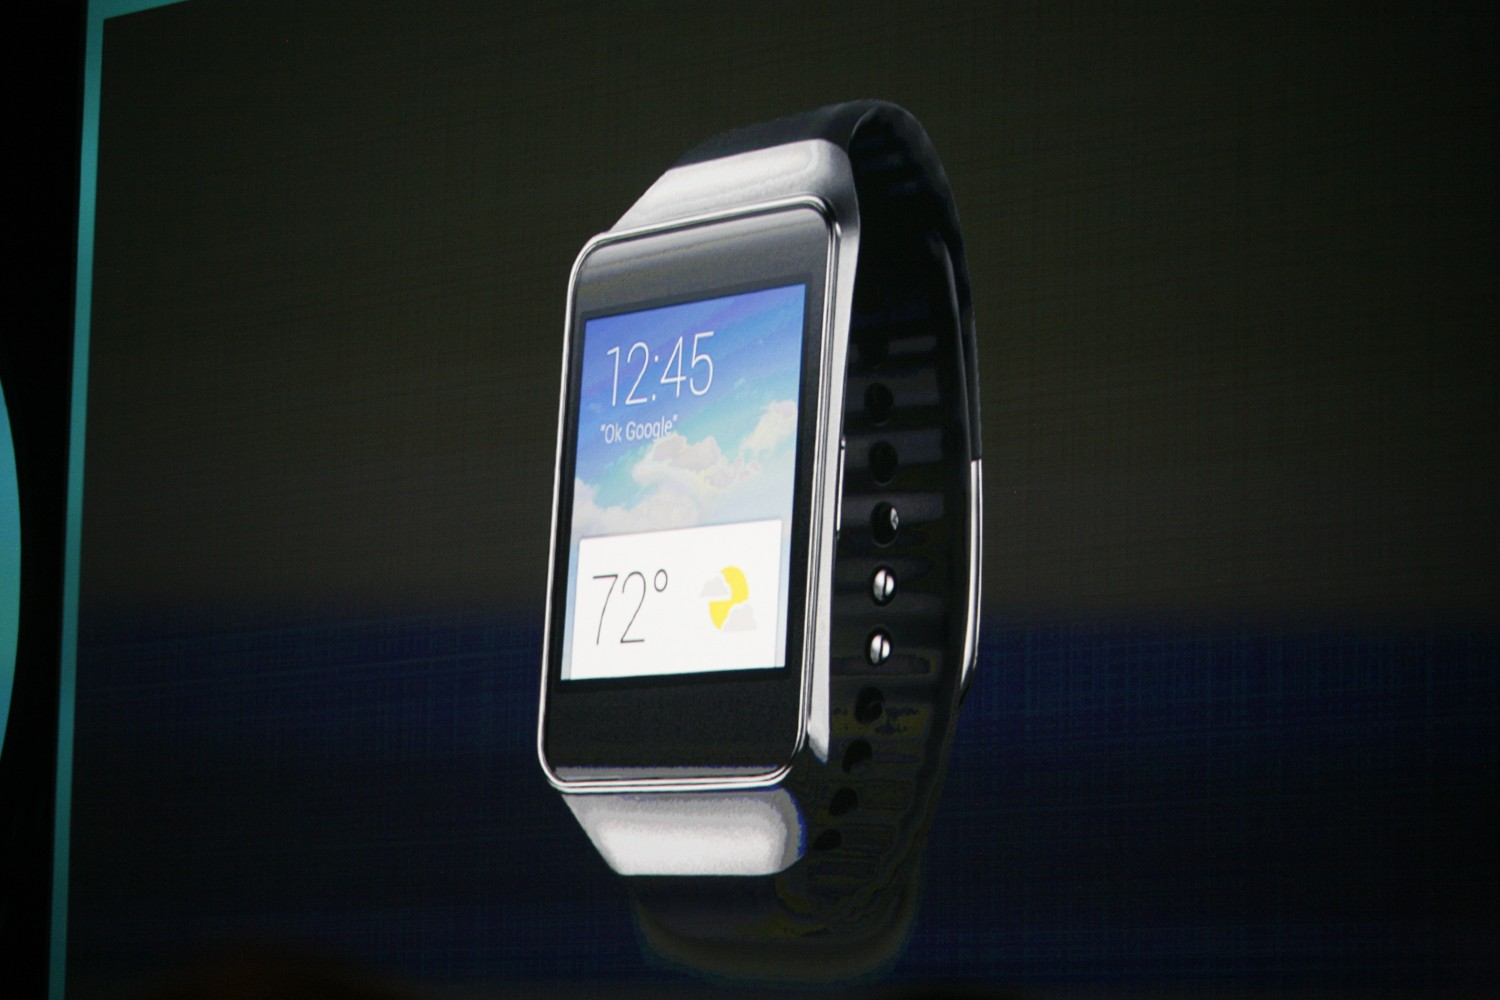 Samsung Gear Live and LG G Android Wear Smartwatches ...